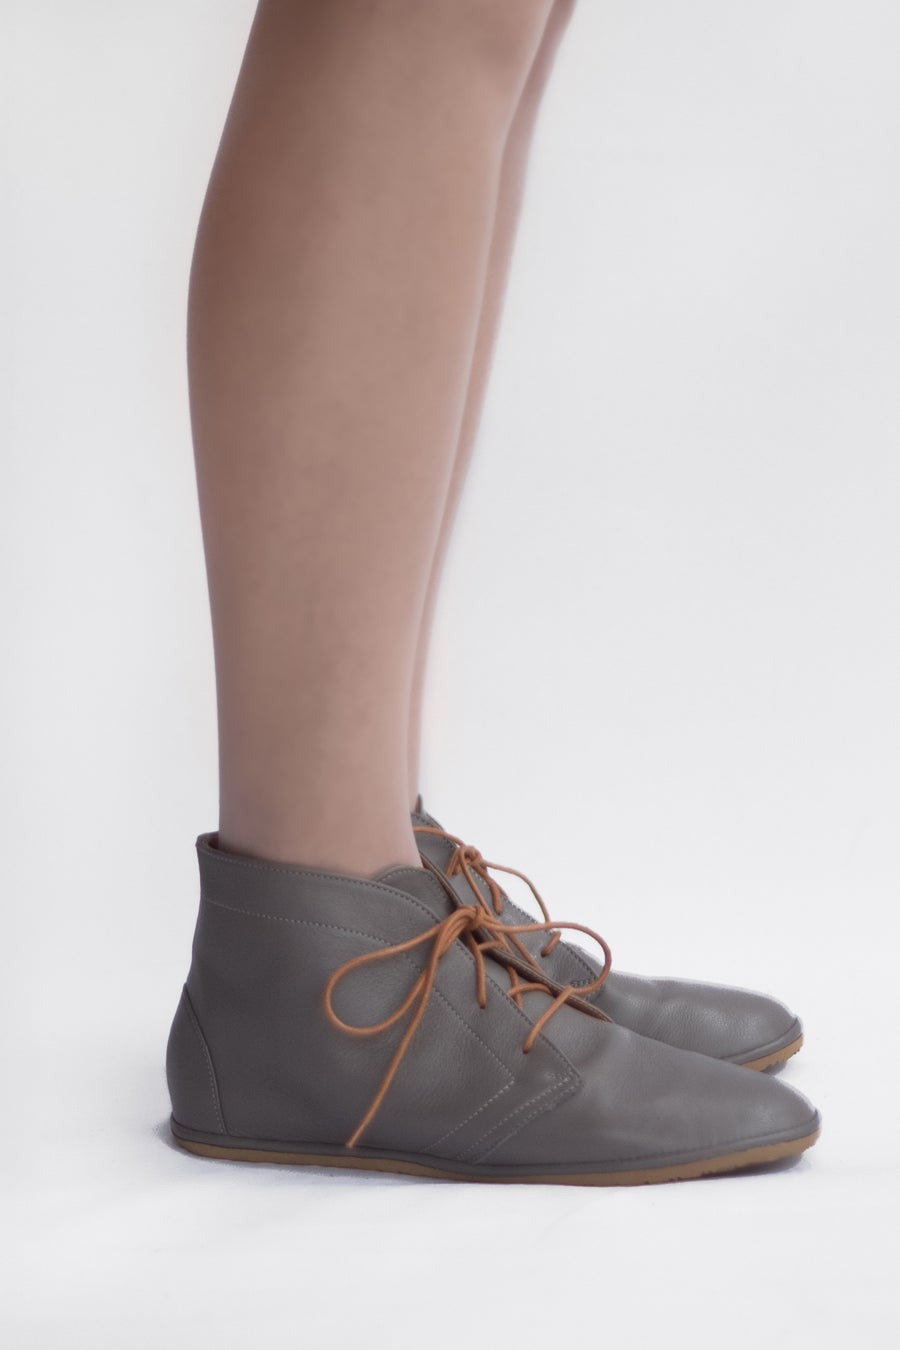 Image of Desert boots - Leona in Pebbled Gray